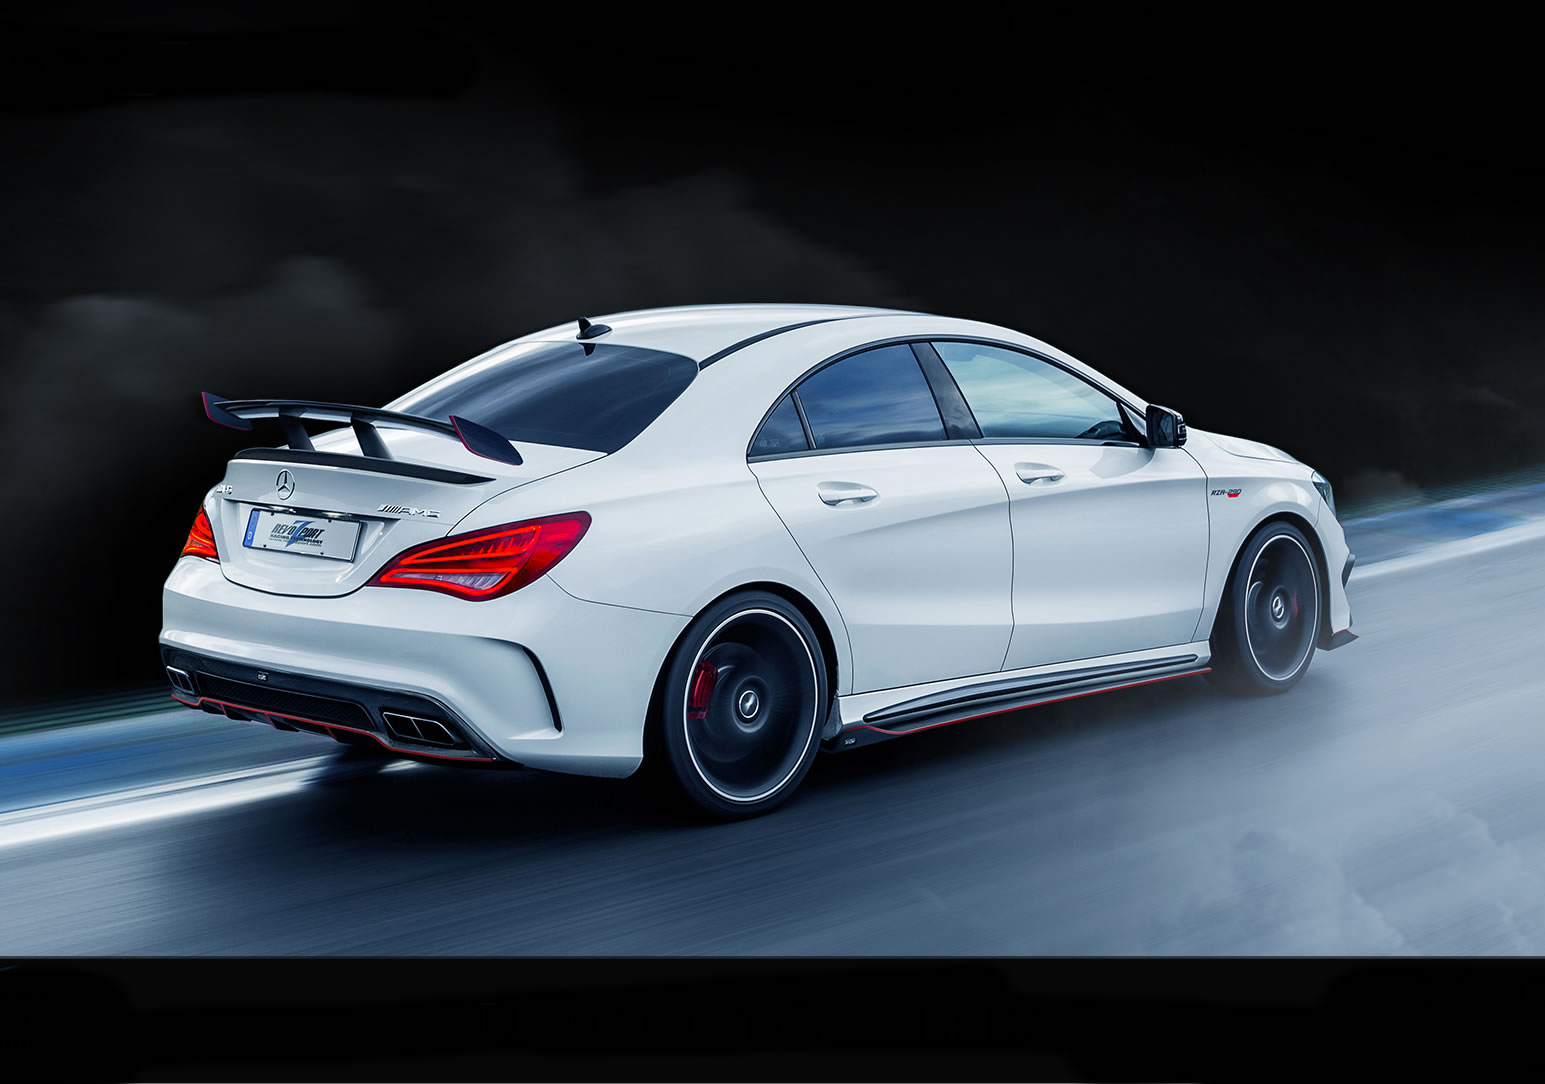 2015 mercedes benz cla45 amg by revozport rear photo for 2015 mercedes benz cla